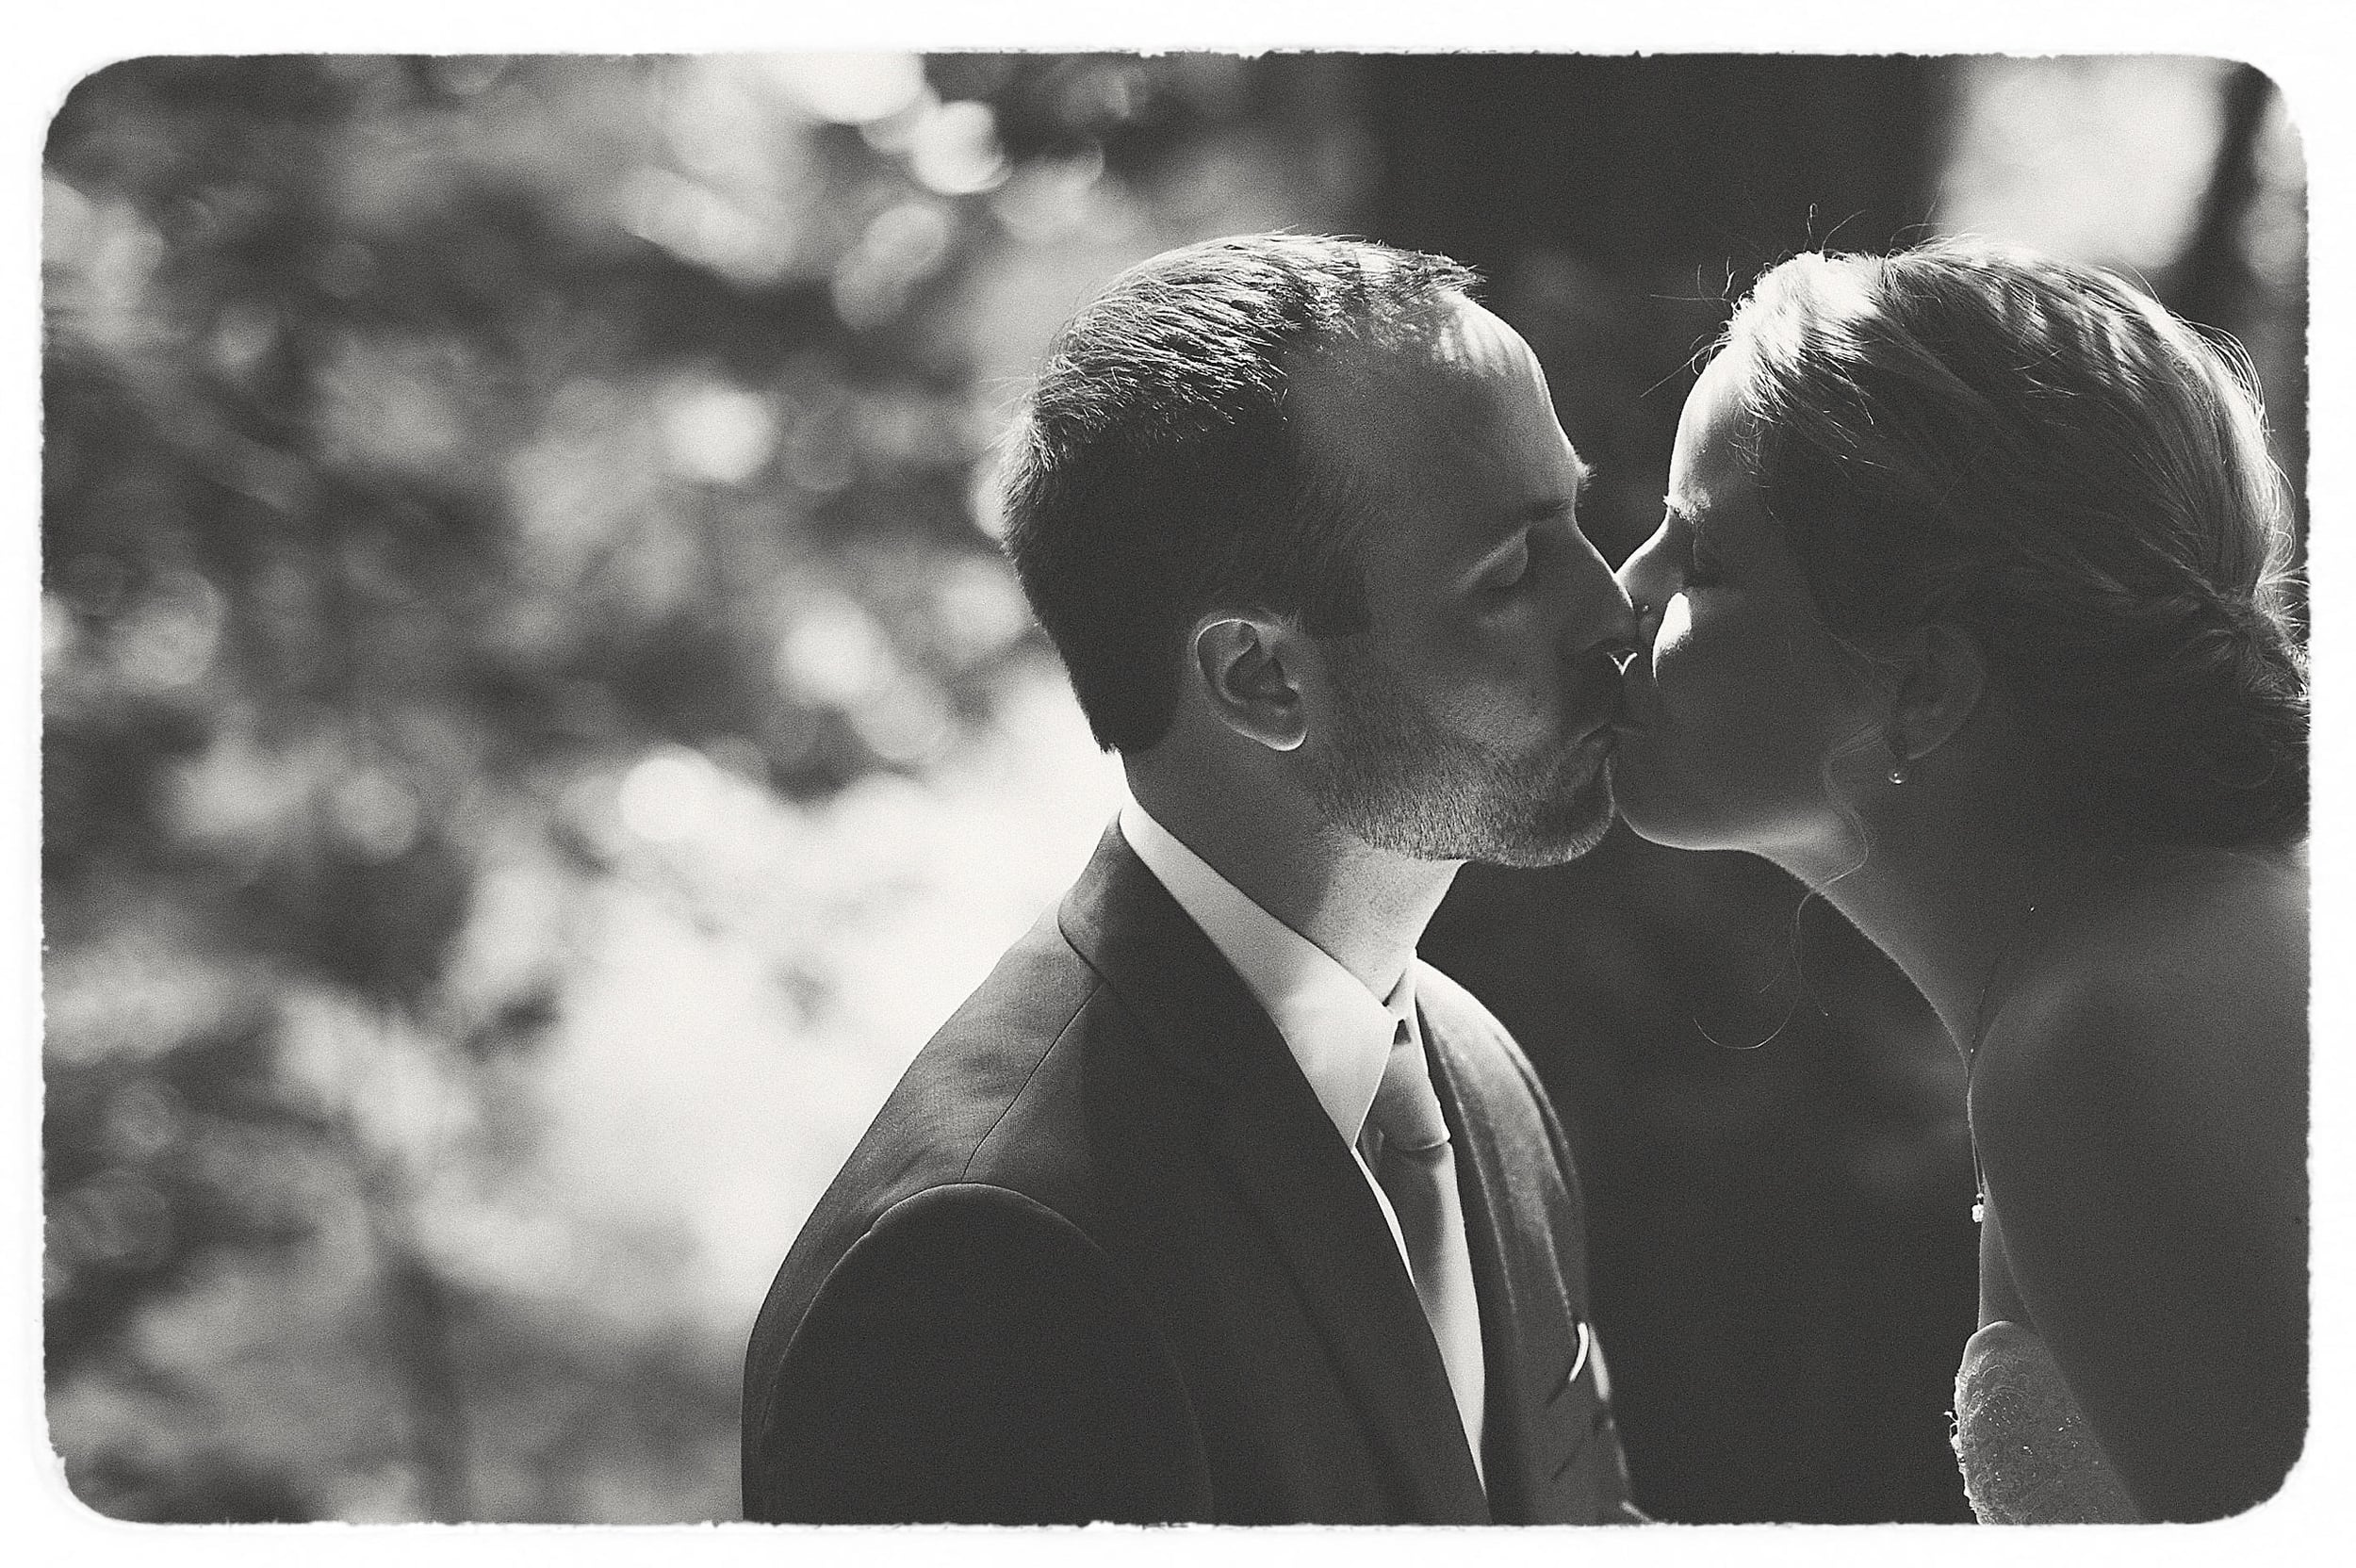 77 Kate&Marc-Wedding-B&WCollection-77Film.jpg